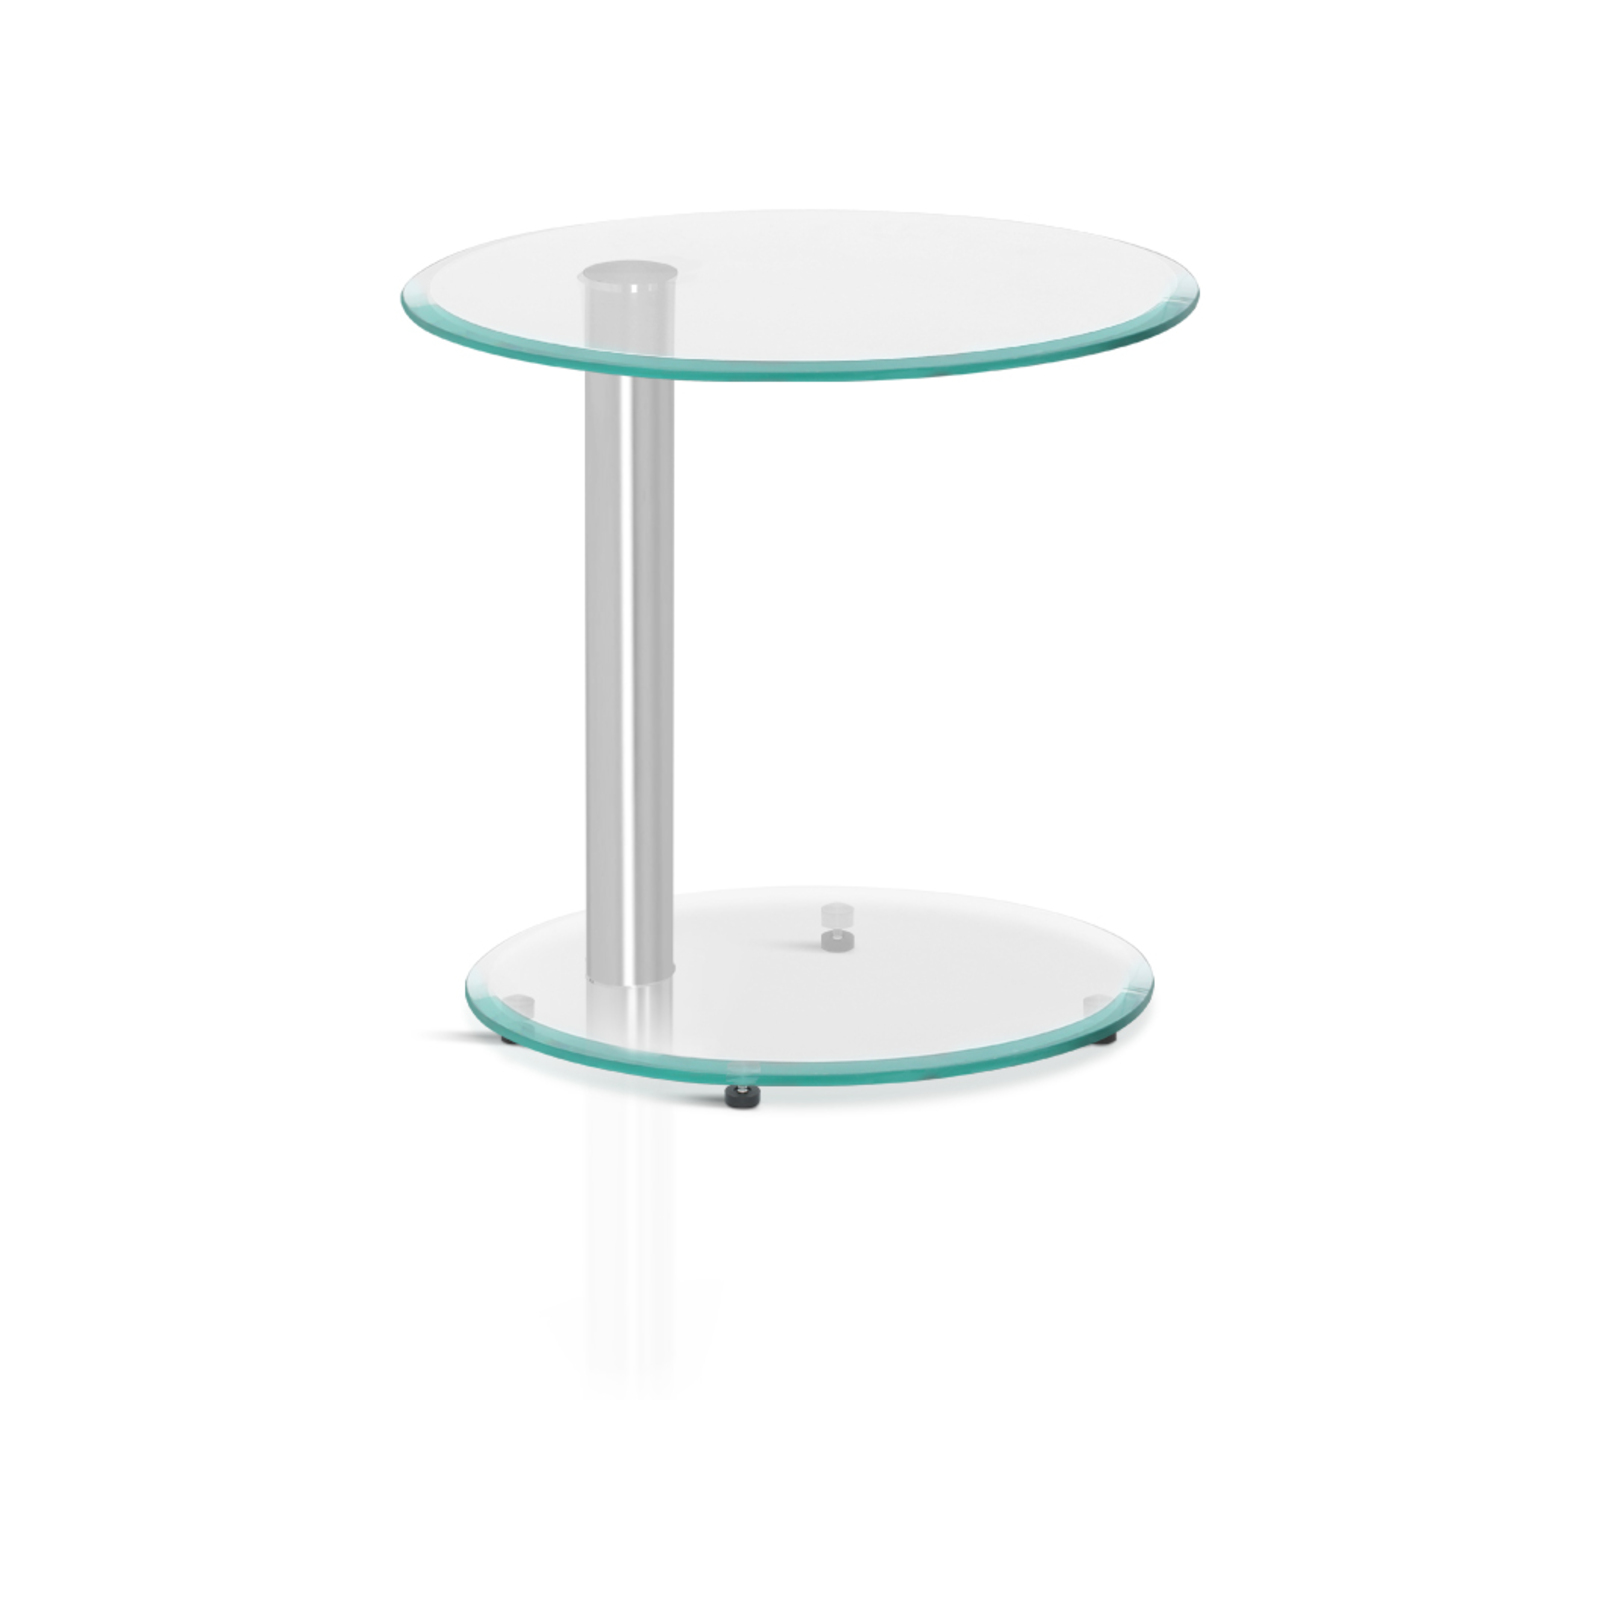 Artiss Coffee Tables Bedside Furniture Oval Tempered Glass Top Bunnings Australia [ 1600 x 1600 Pixel ]